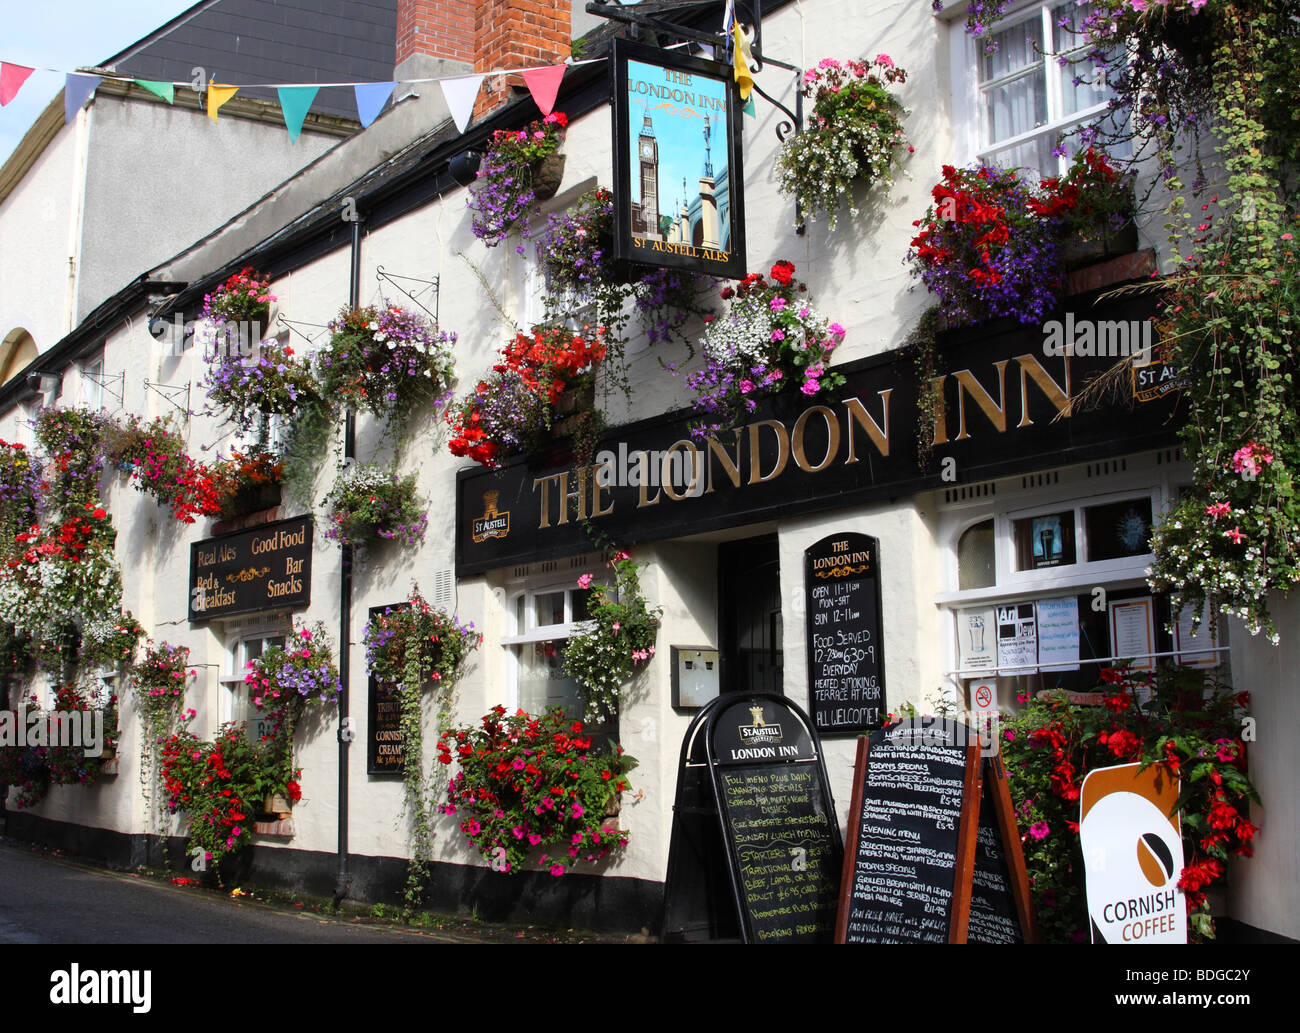 The London Inn, Padstow, North Cornwall, England, U.K. - Stock Image